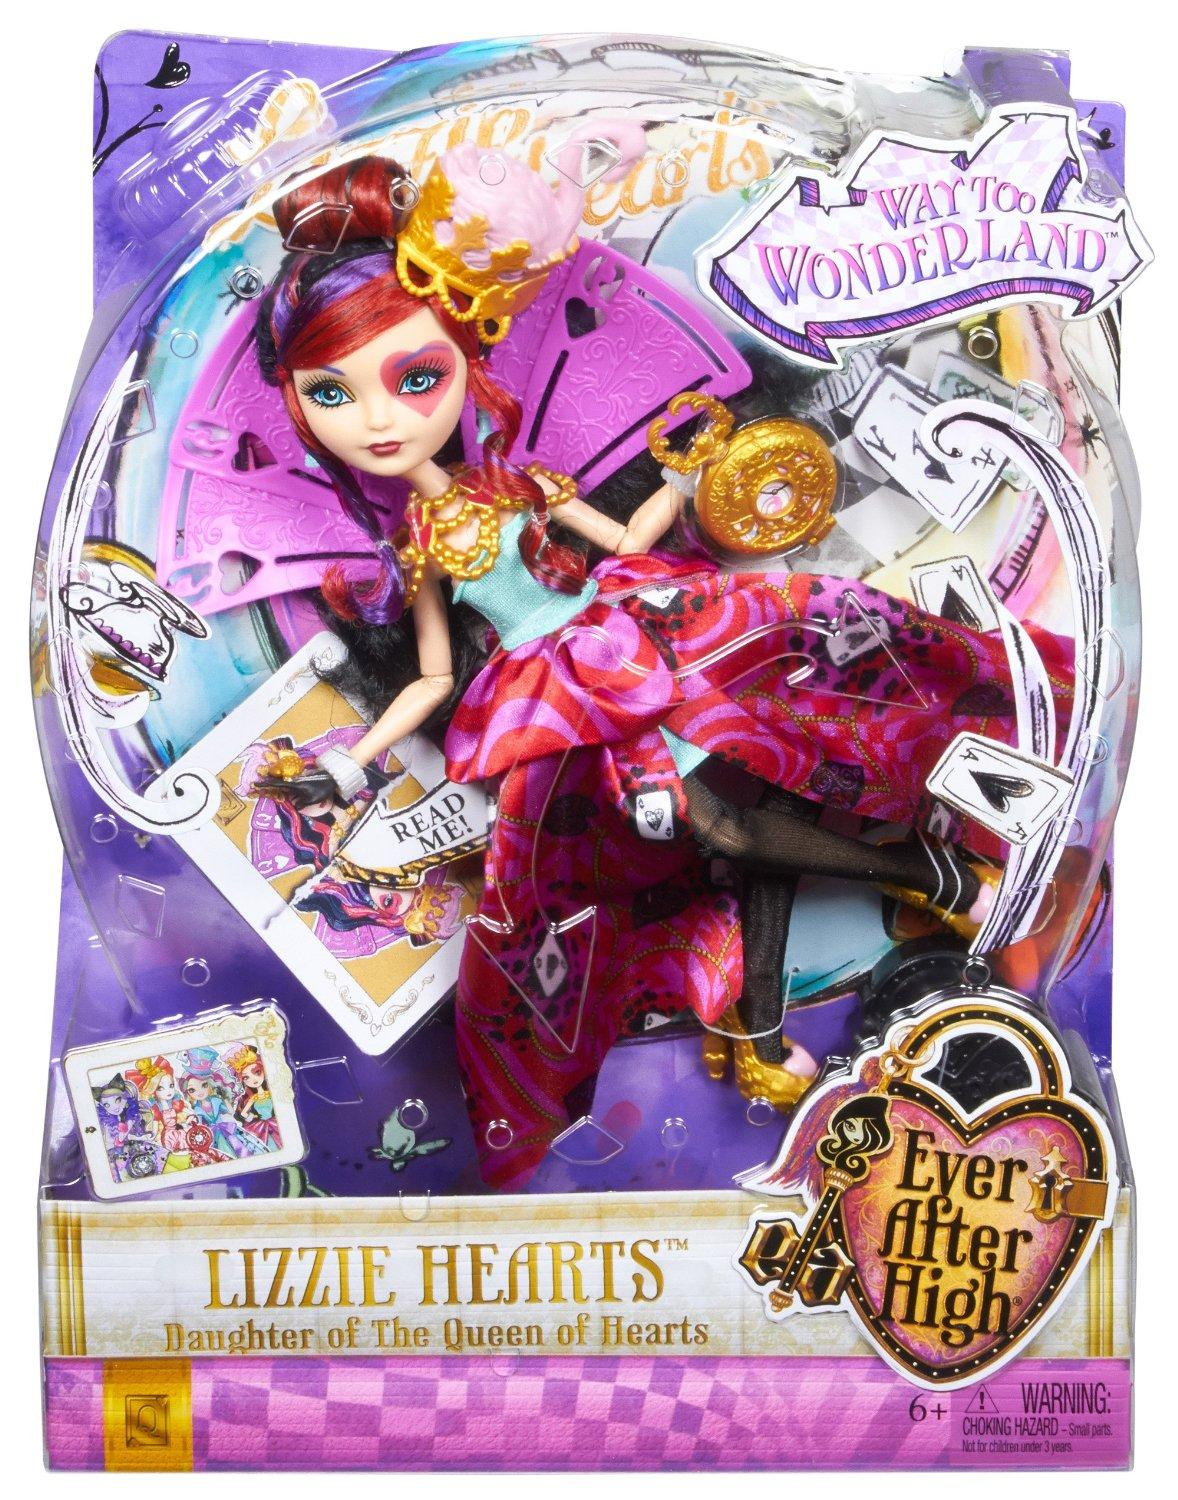 Hearts For Hearts Girls - Dolls & Games - Changing the World!